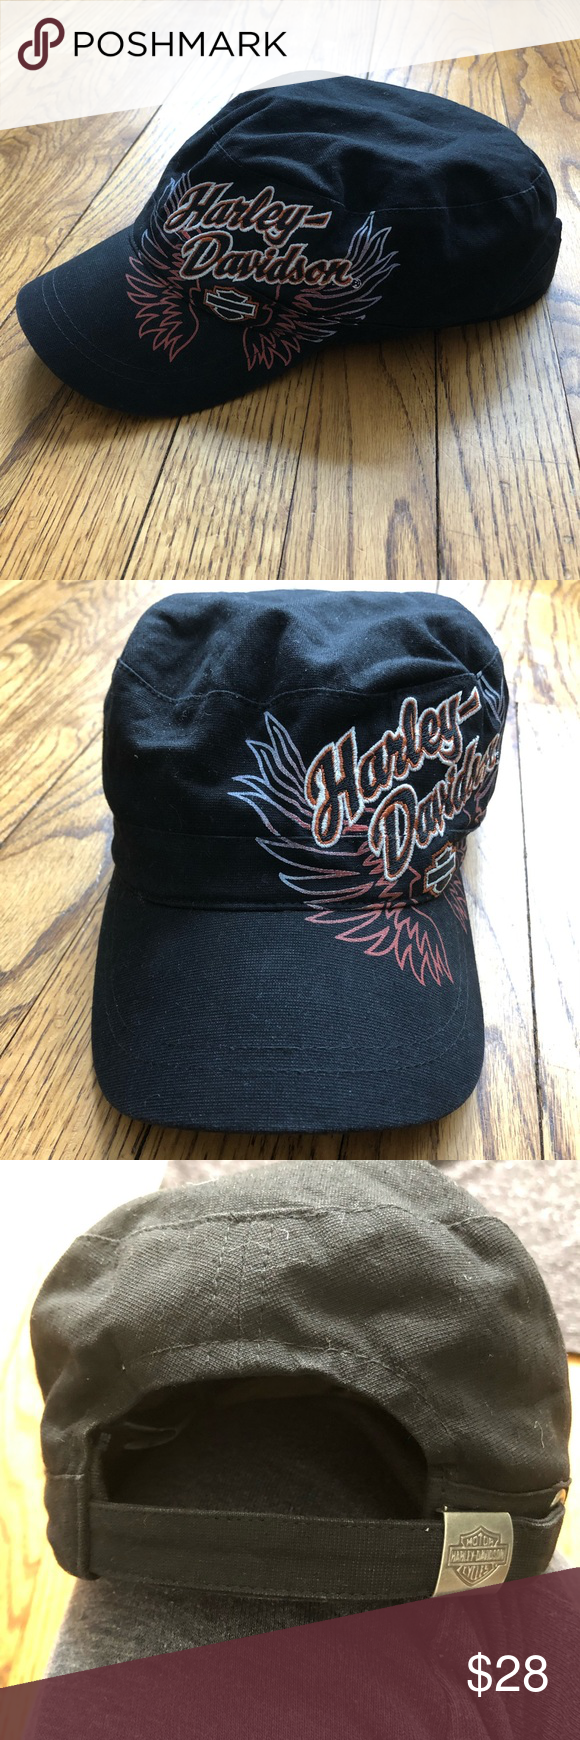 d2fc613eff2e9 Harley-Davidson Women s hat Lightly worn! In great condition! From a pet  and smoke free home! Bundle 3 or more and save 10%!! Harley-Davidson  Accessories ...